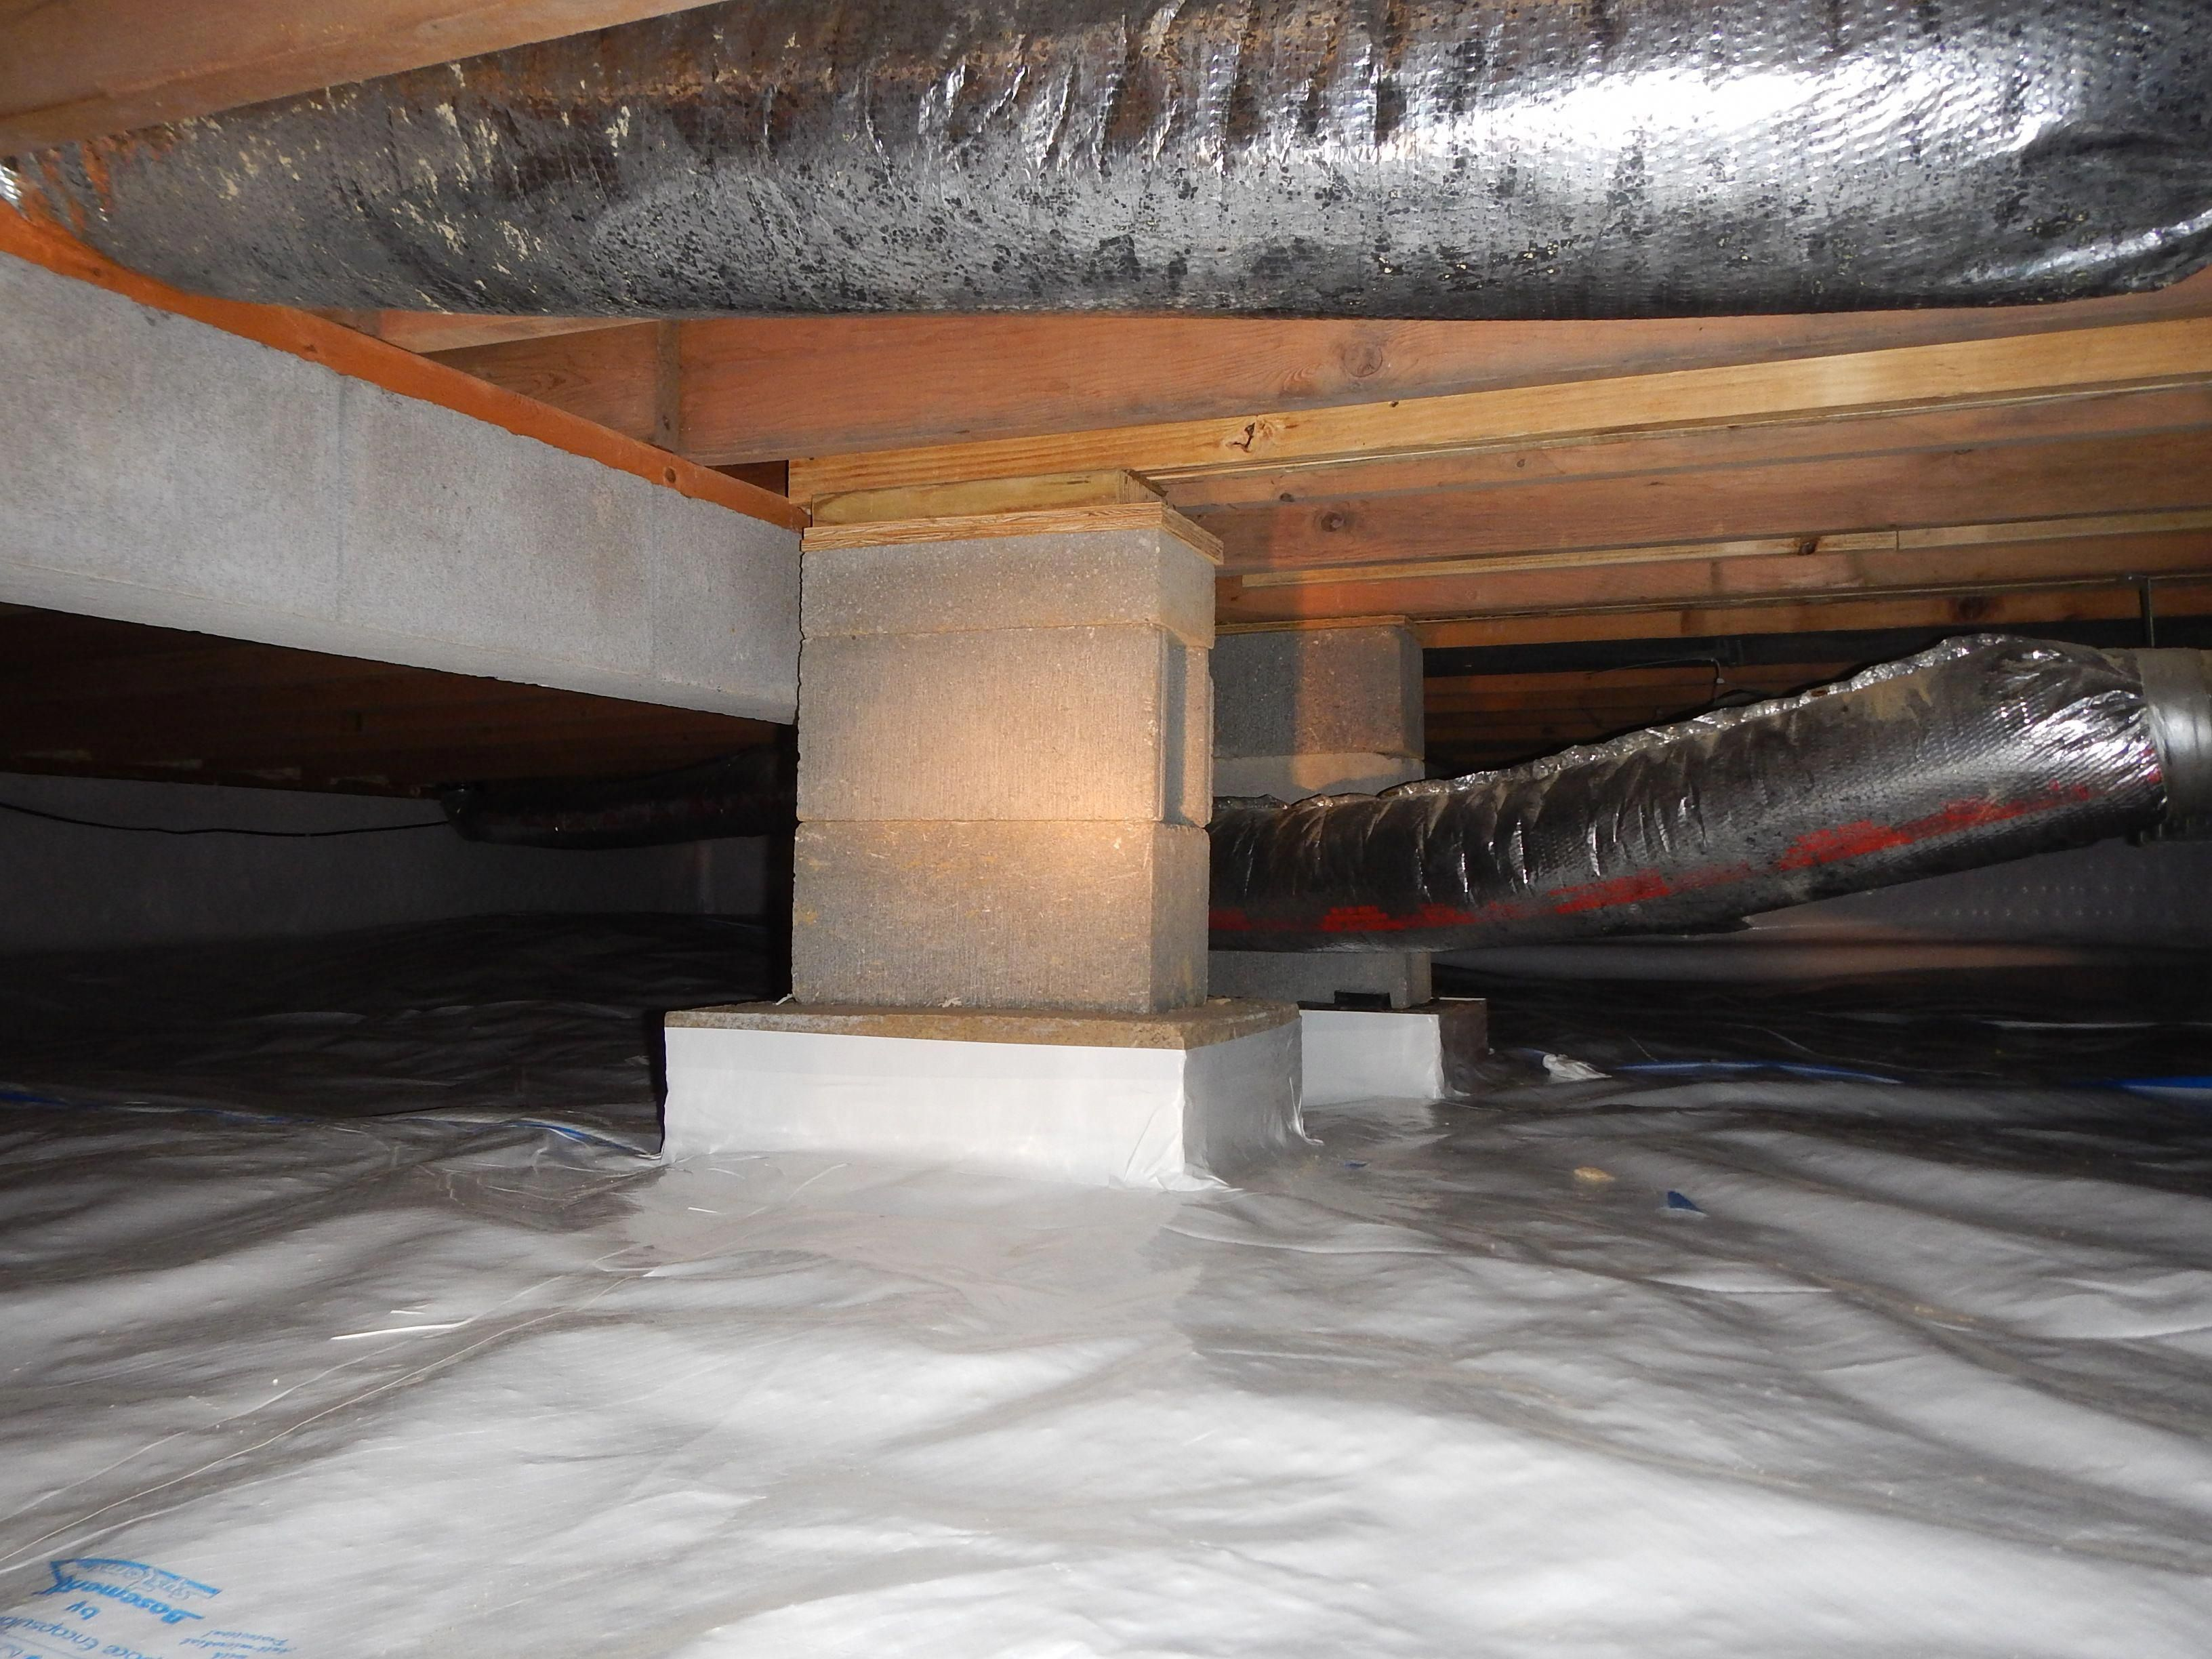 Crawlspace Block Piers Added To A Beam Between The Floor Joists That Is Preventing The Sub Floor From Sagging An Interior Home Repairs Home Fix Crawlspace